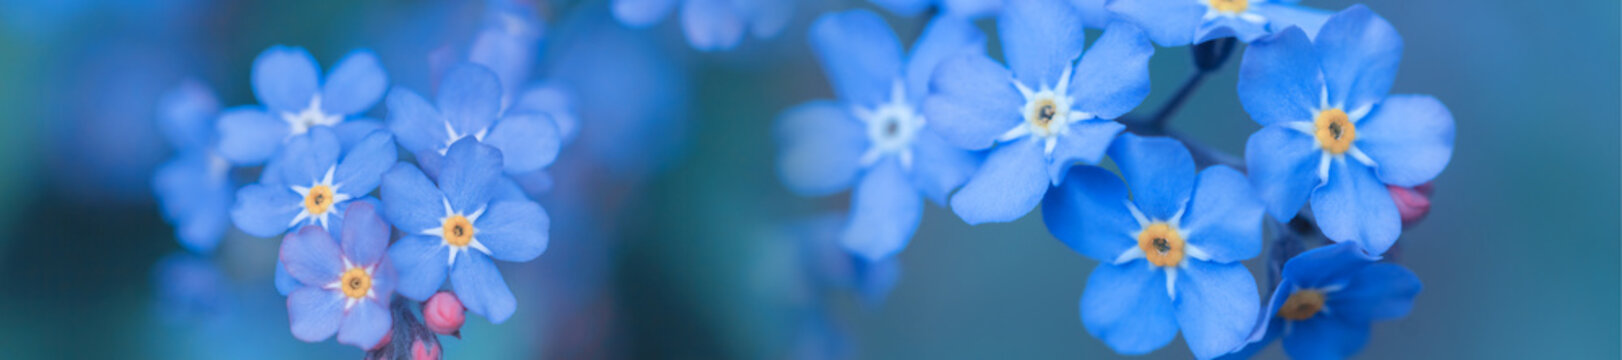 panorama spring background forget-me-not flowers